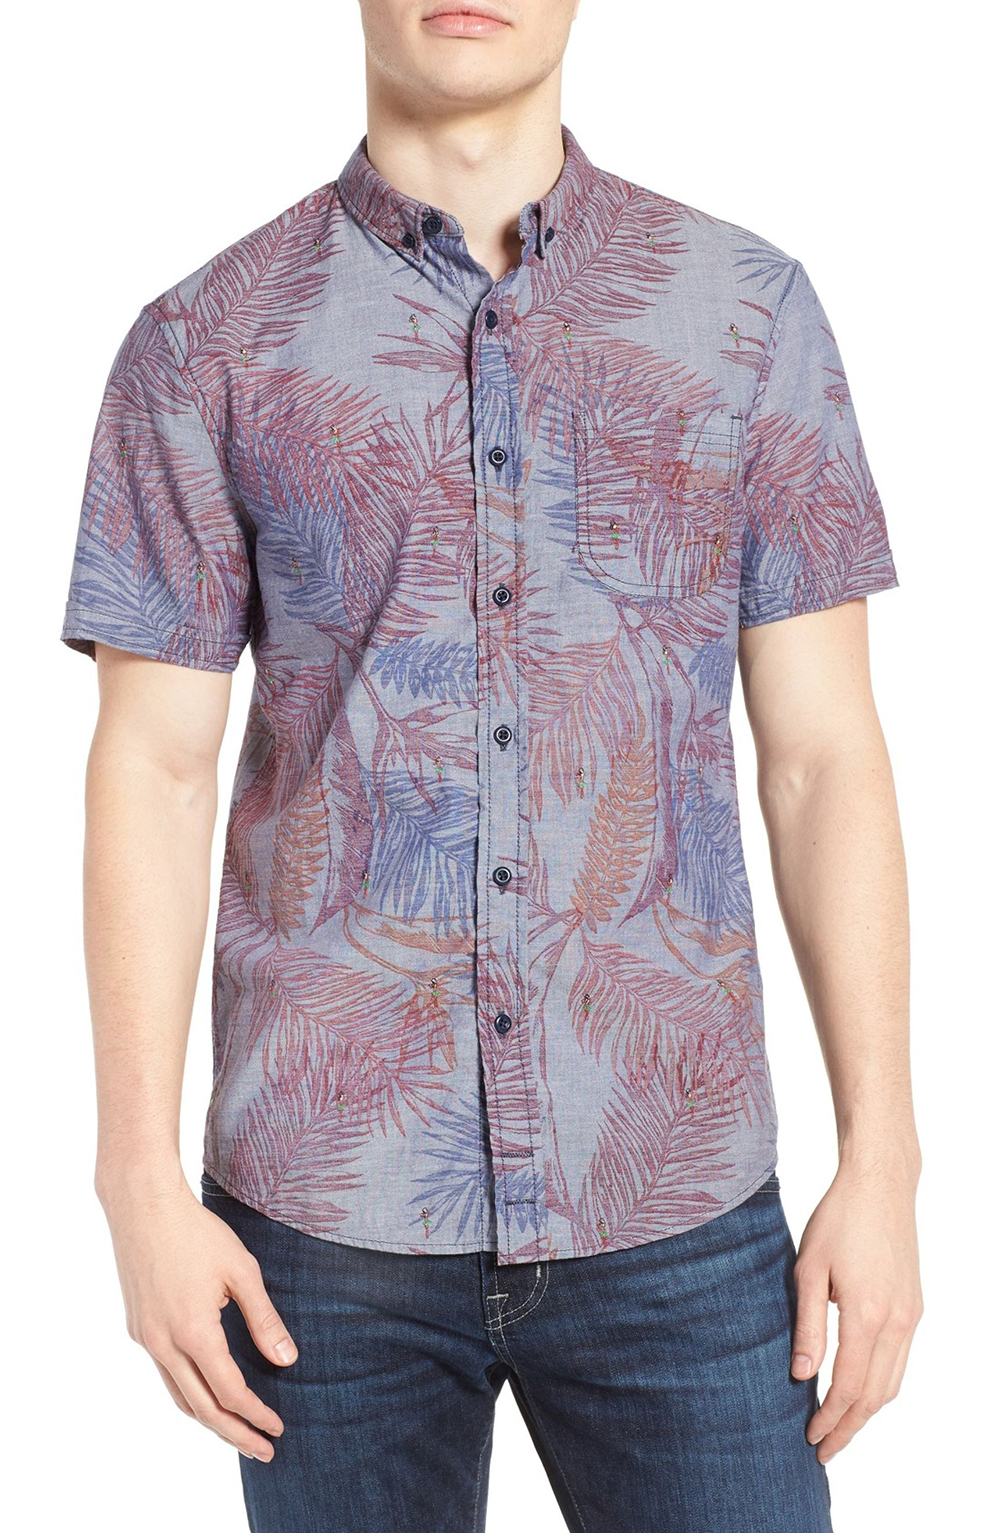 1901 Hawaiian Embroidered Woven Shirt - Spring Menswear: Button Downs and Bomber Jackets